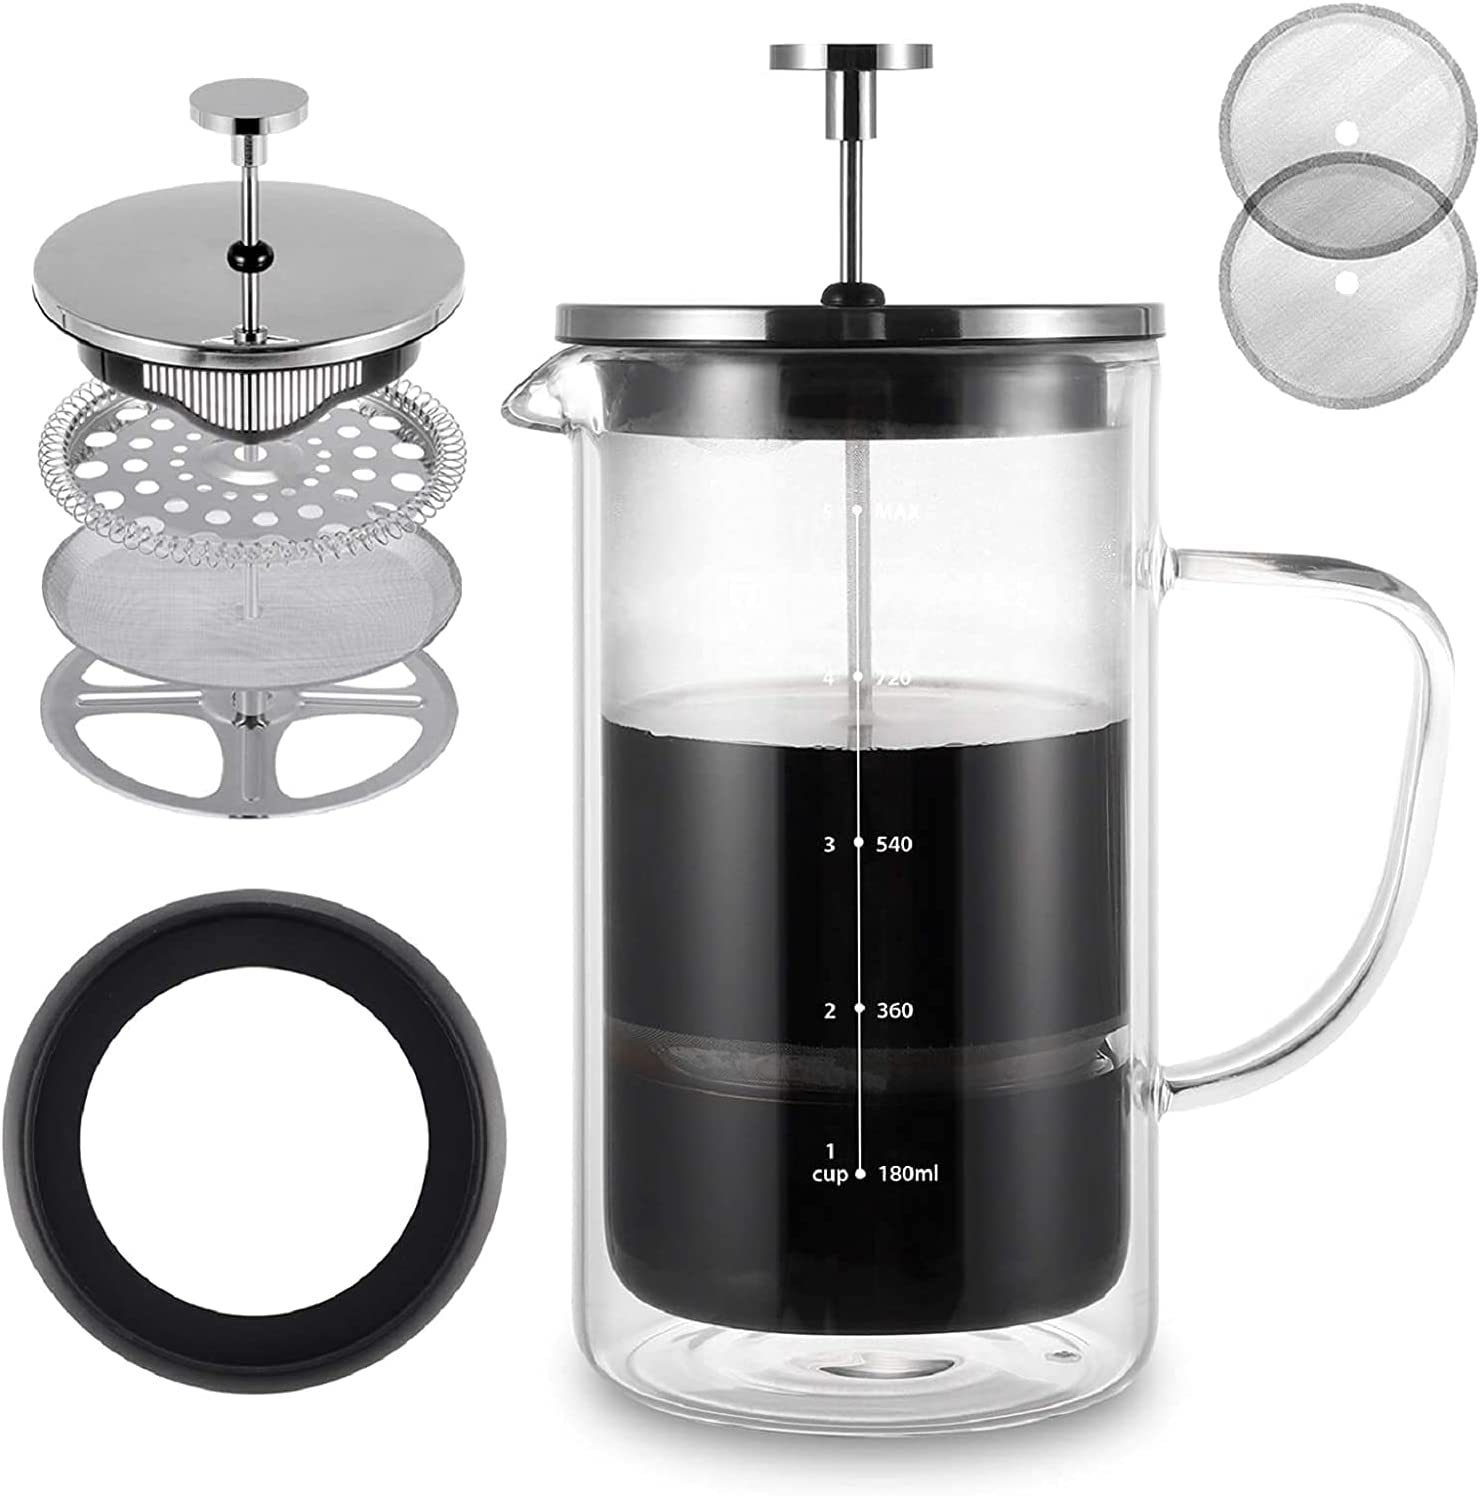 French Press Coffee Maker 21 67% OFF of fixed price Ranking TOP20 Wall Double oz Insulat